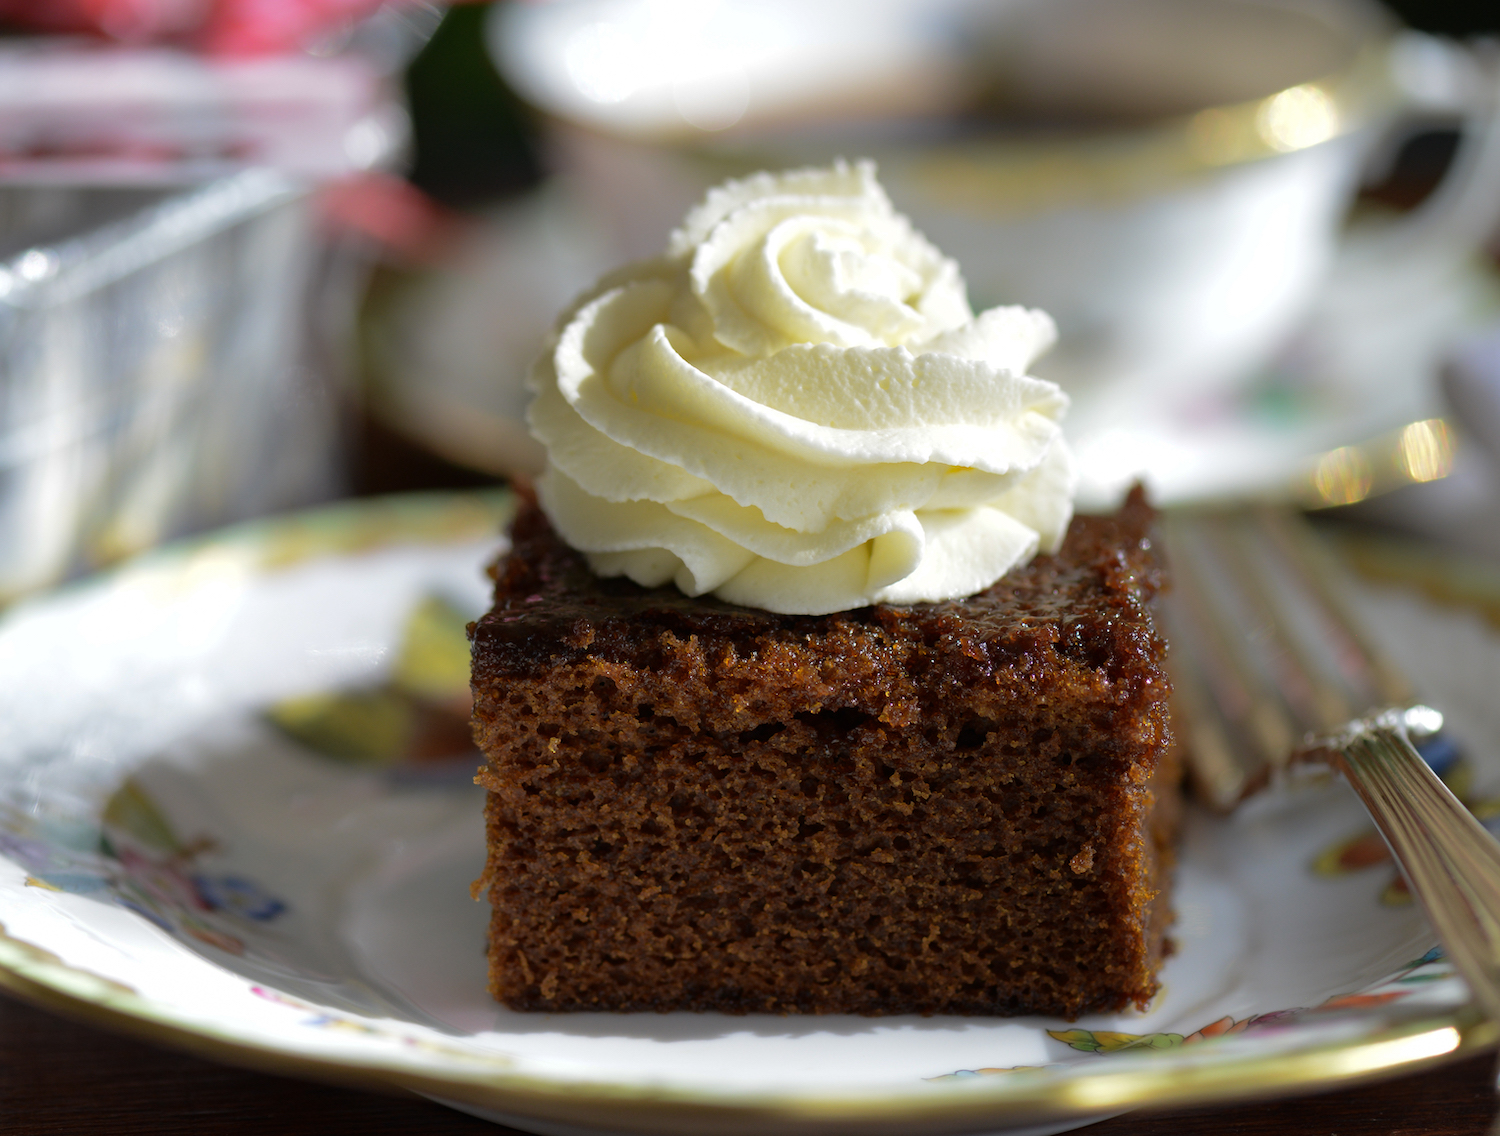 Gingerbread slice